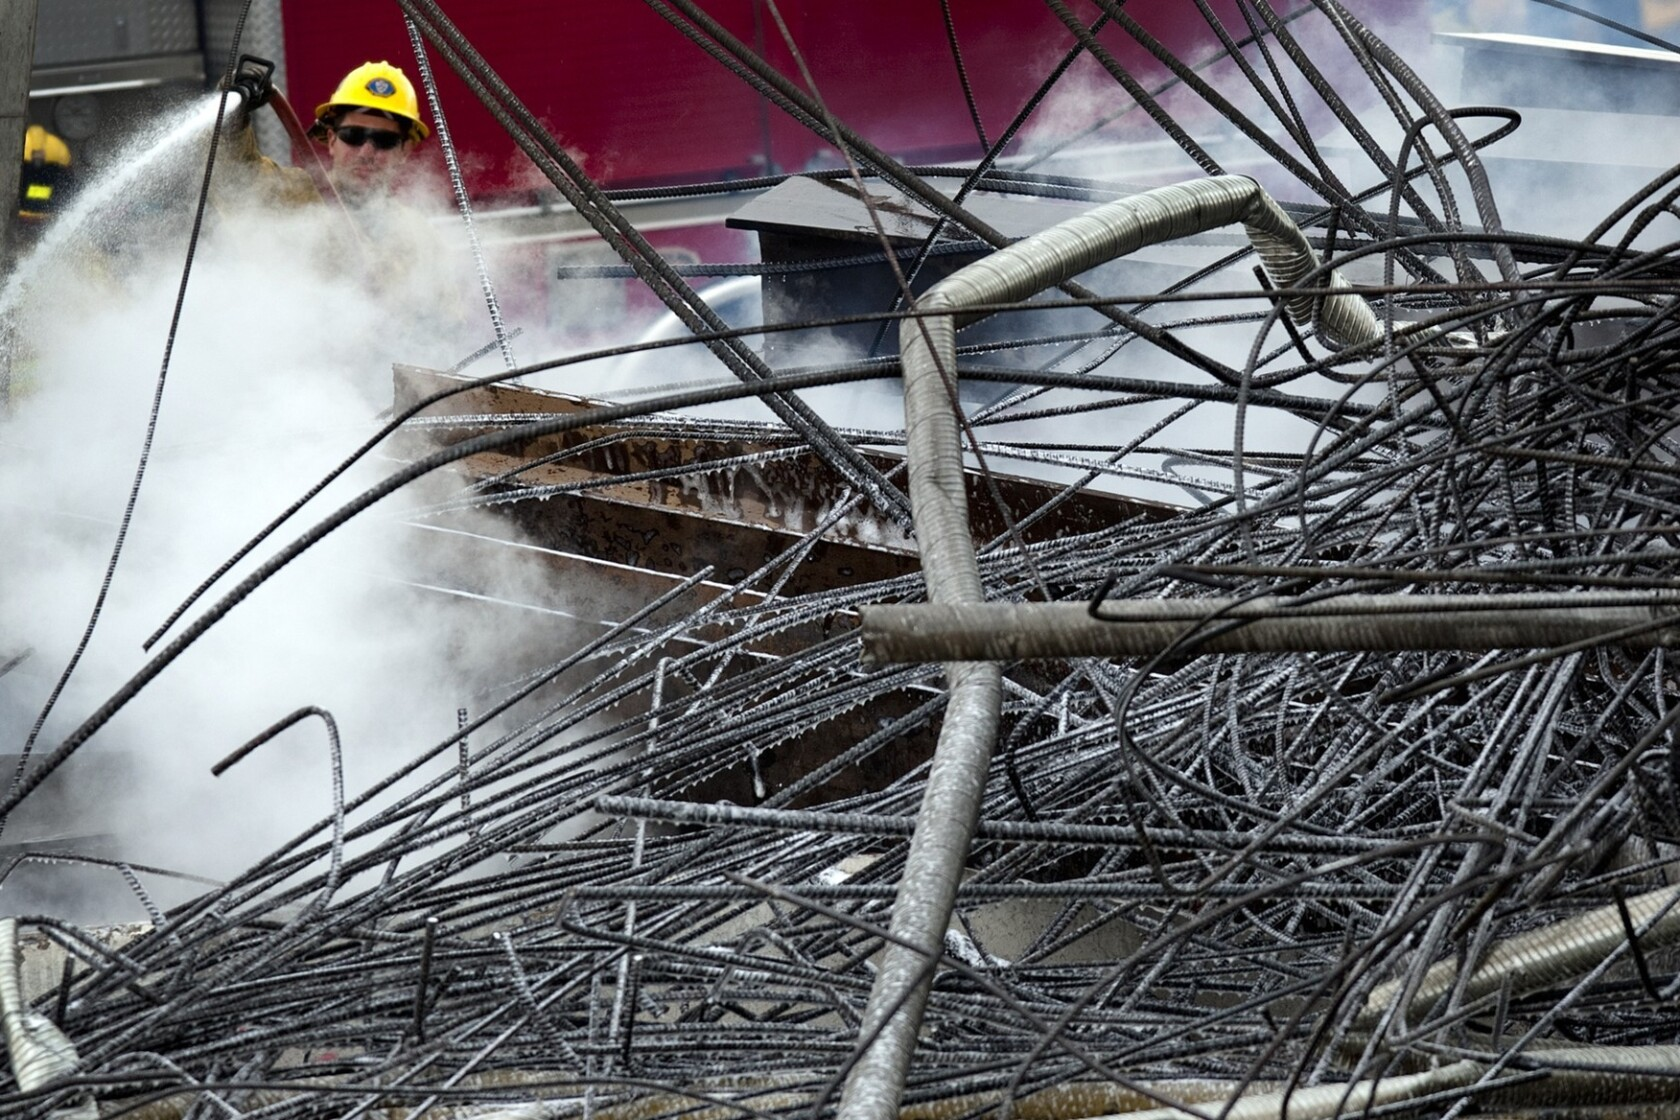 Bridge fire leaves Hesperia plan for economic boost in ashes - Los